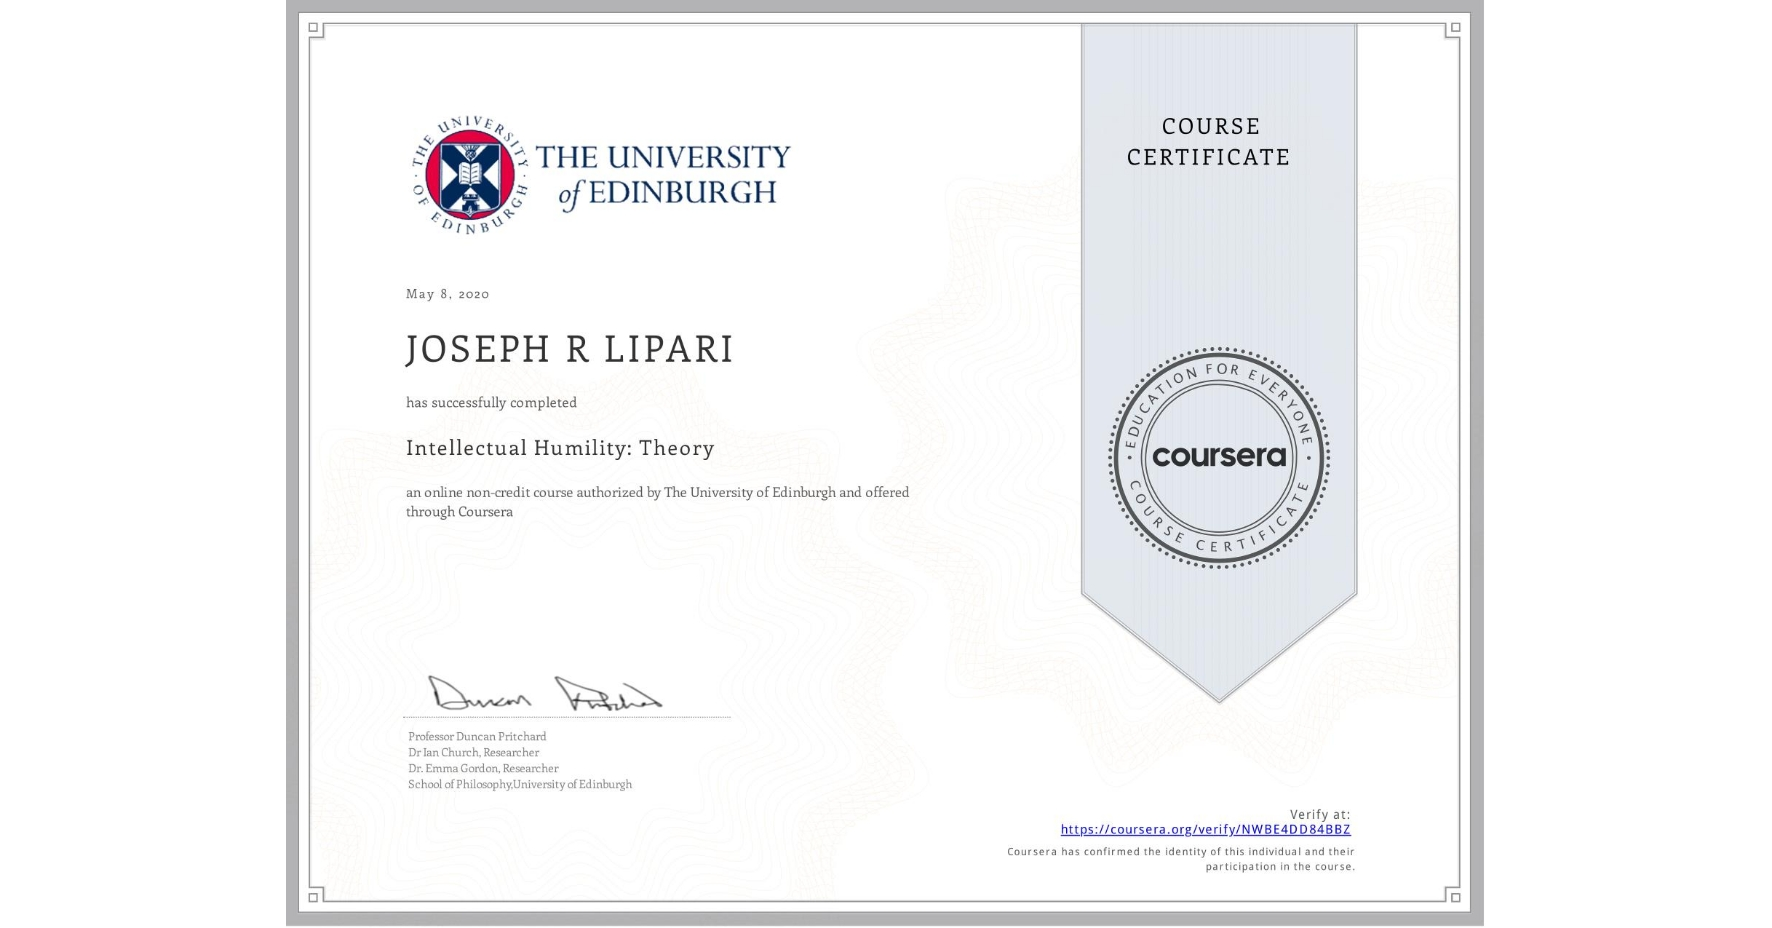 View certificate for JOSEPH R  LIPARI, Intellectual Humility: Theory, an online non-credit course authorized by The University of Edinburgh and offered through Coursera